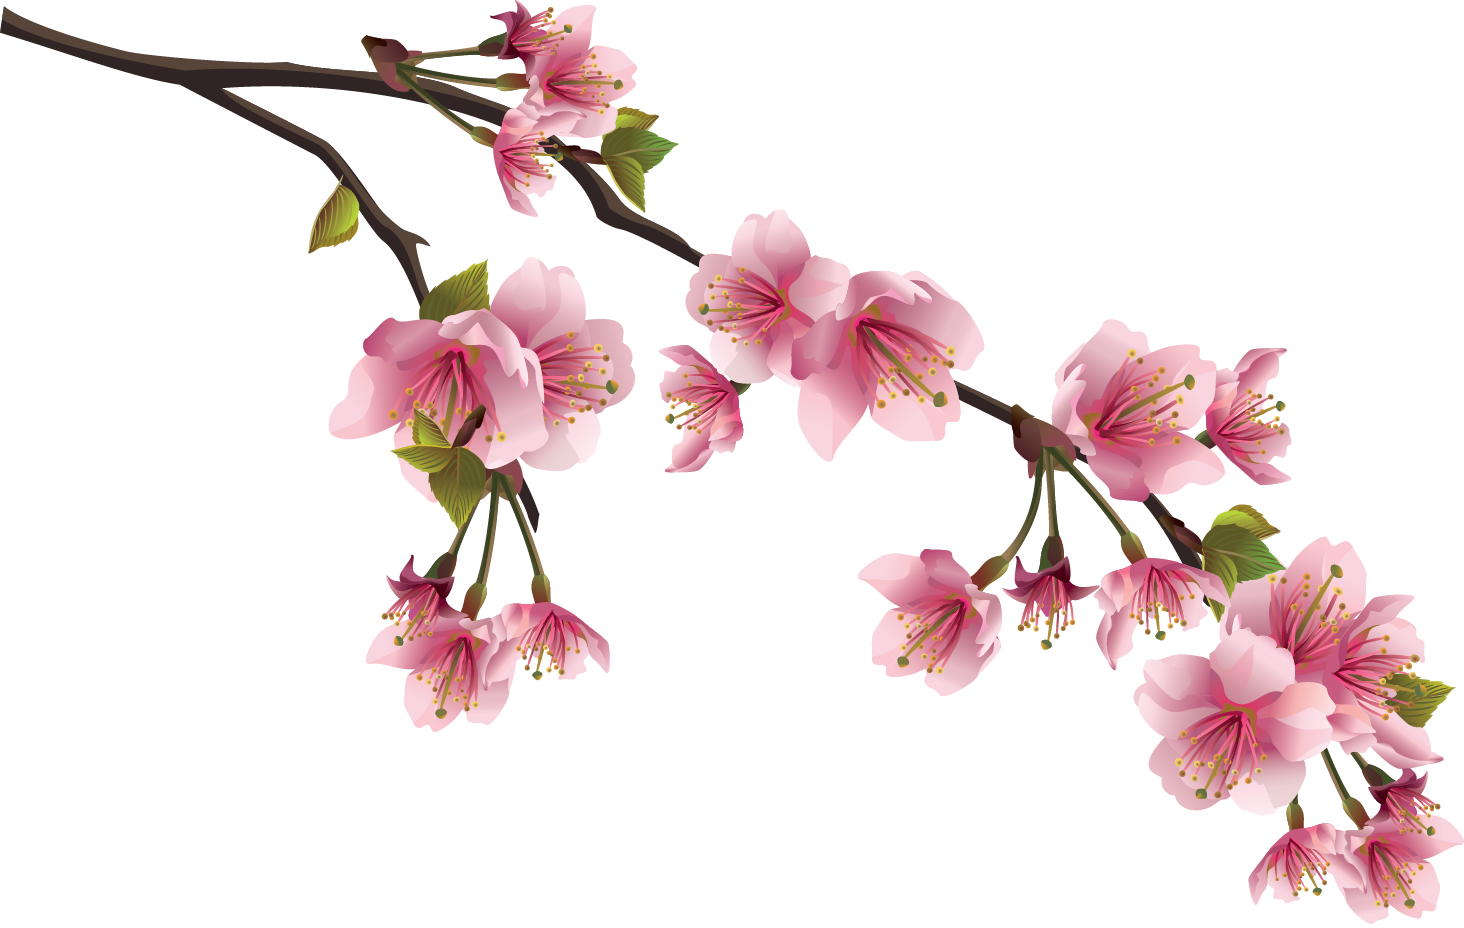 Magnolia flower clipart banner freeuse library Afbeeldingsresultaat voor png branch | plant png | Pinterest banner freeuse library